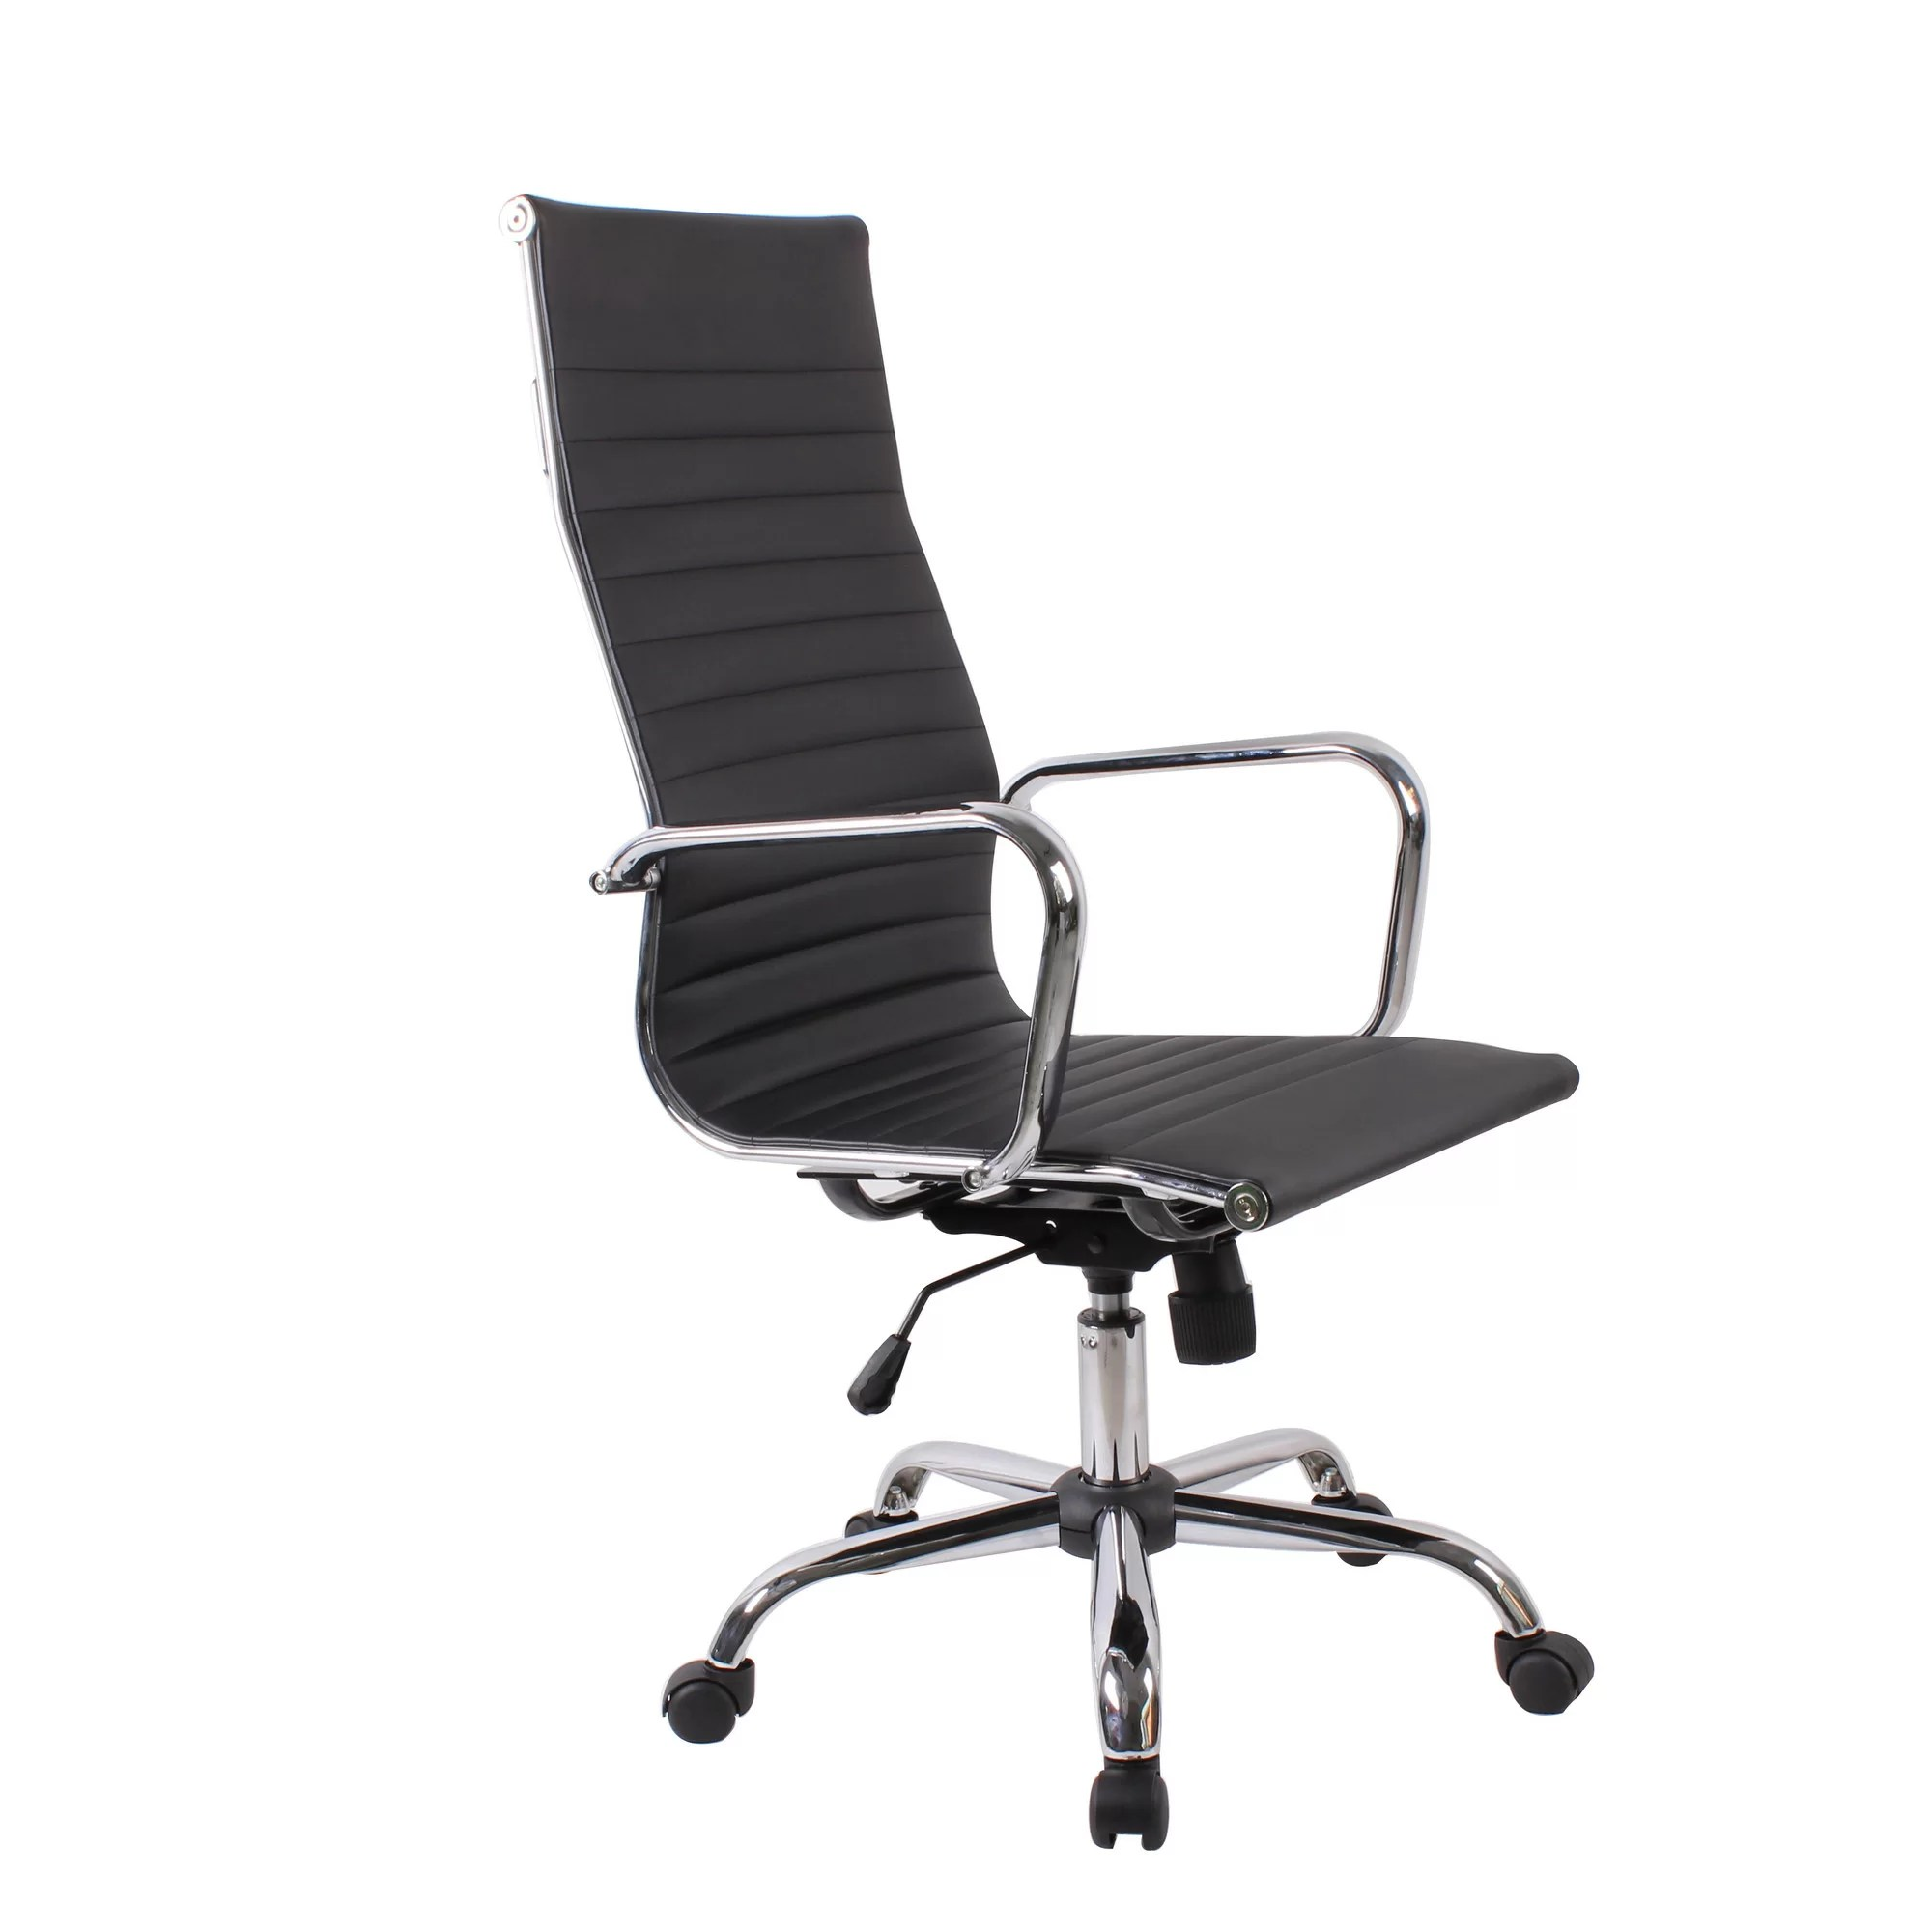 High Back Office Chairs Winport Industries Winport High Back Executive Chair